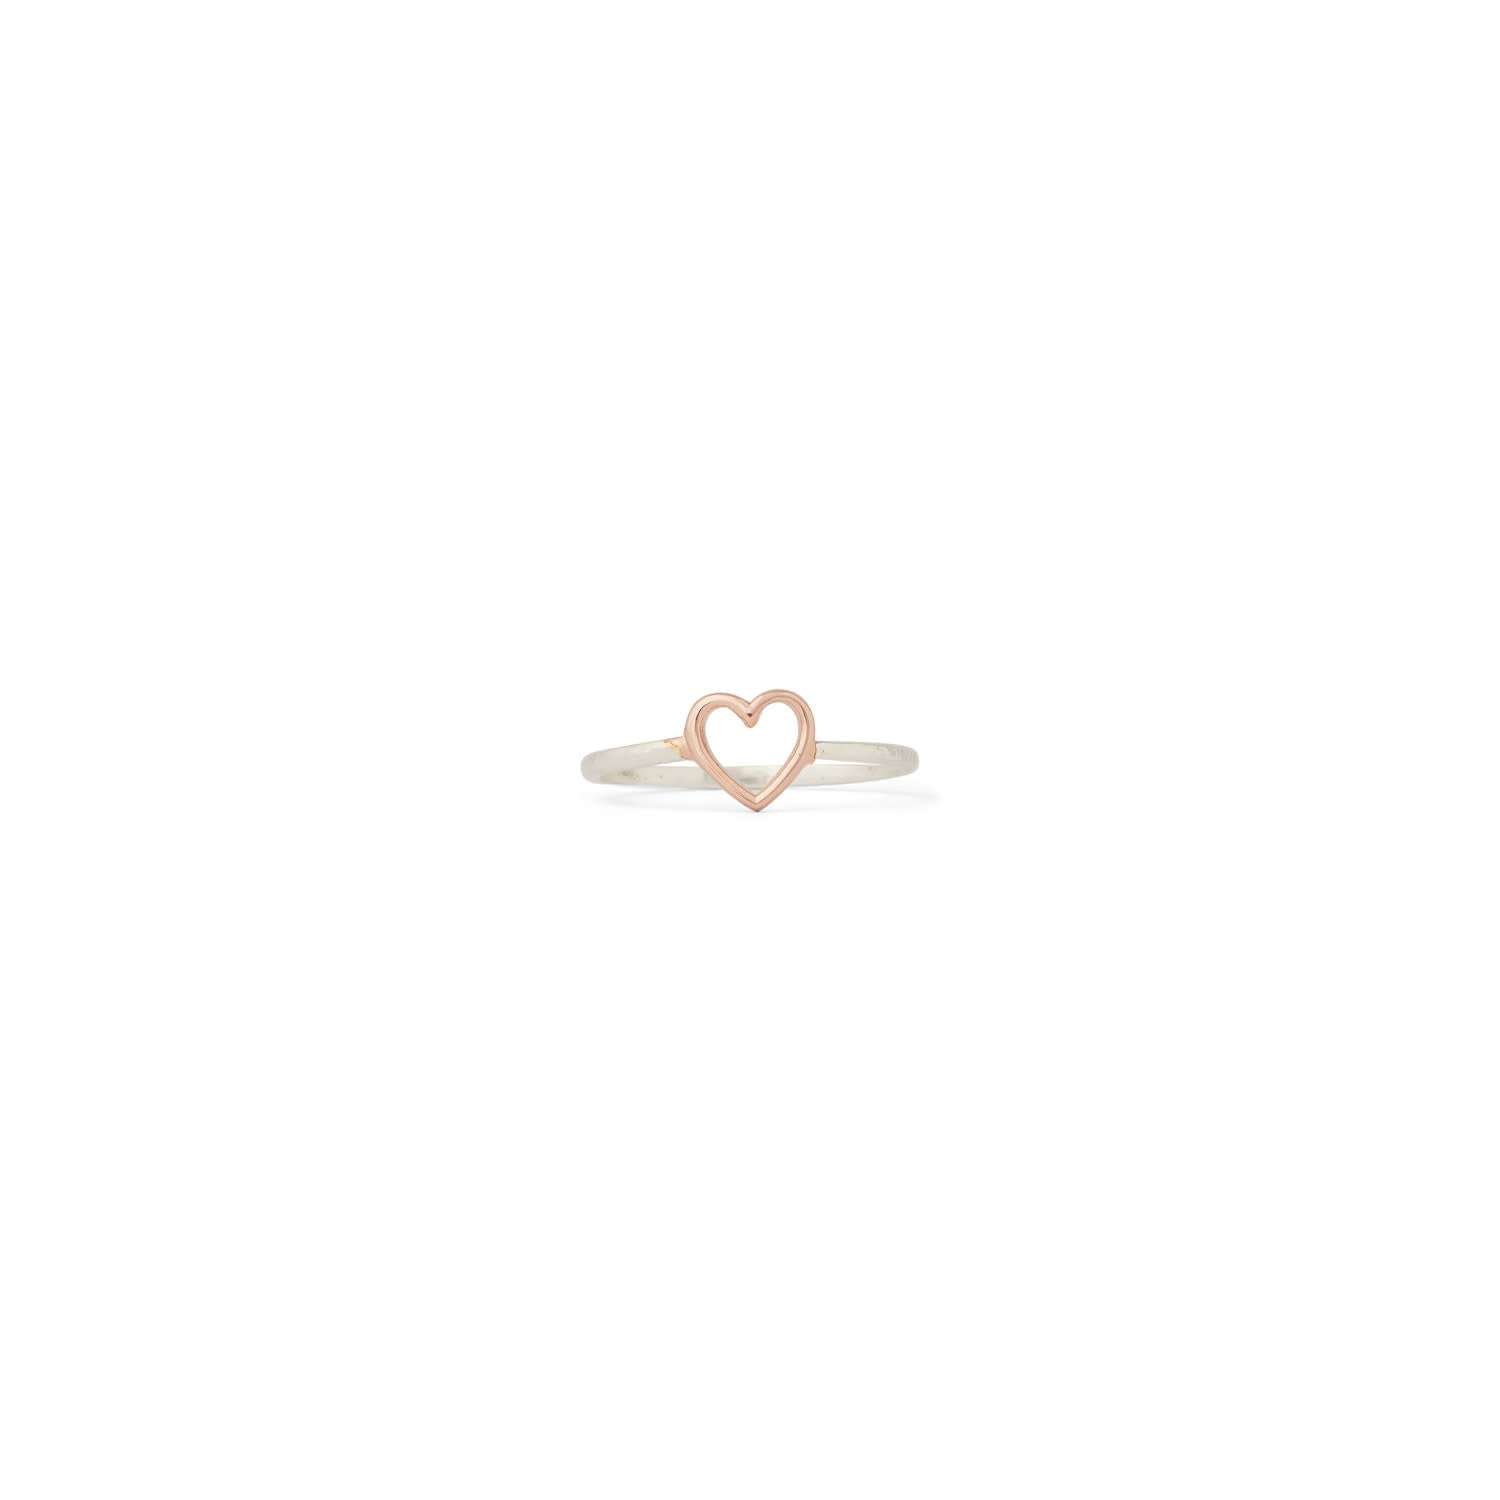 PURA VIDA ROSE GOLD OPEN HEART RING SILVER